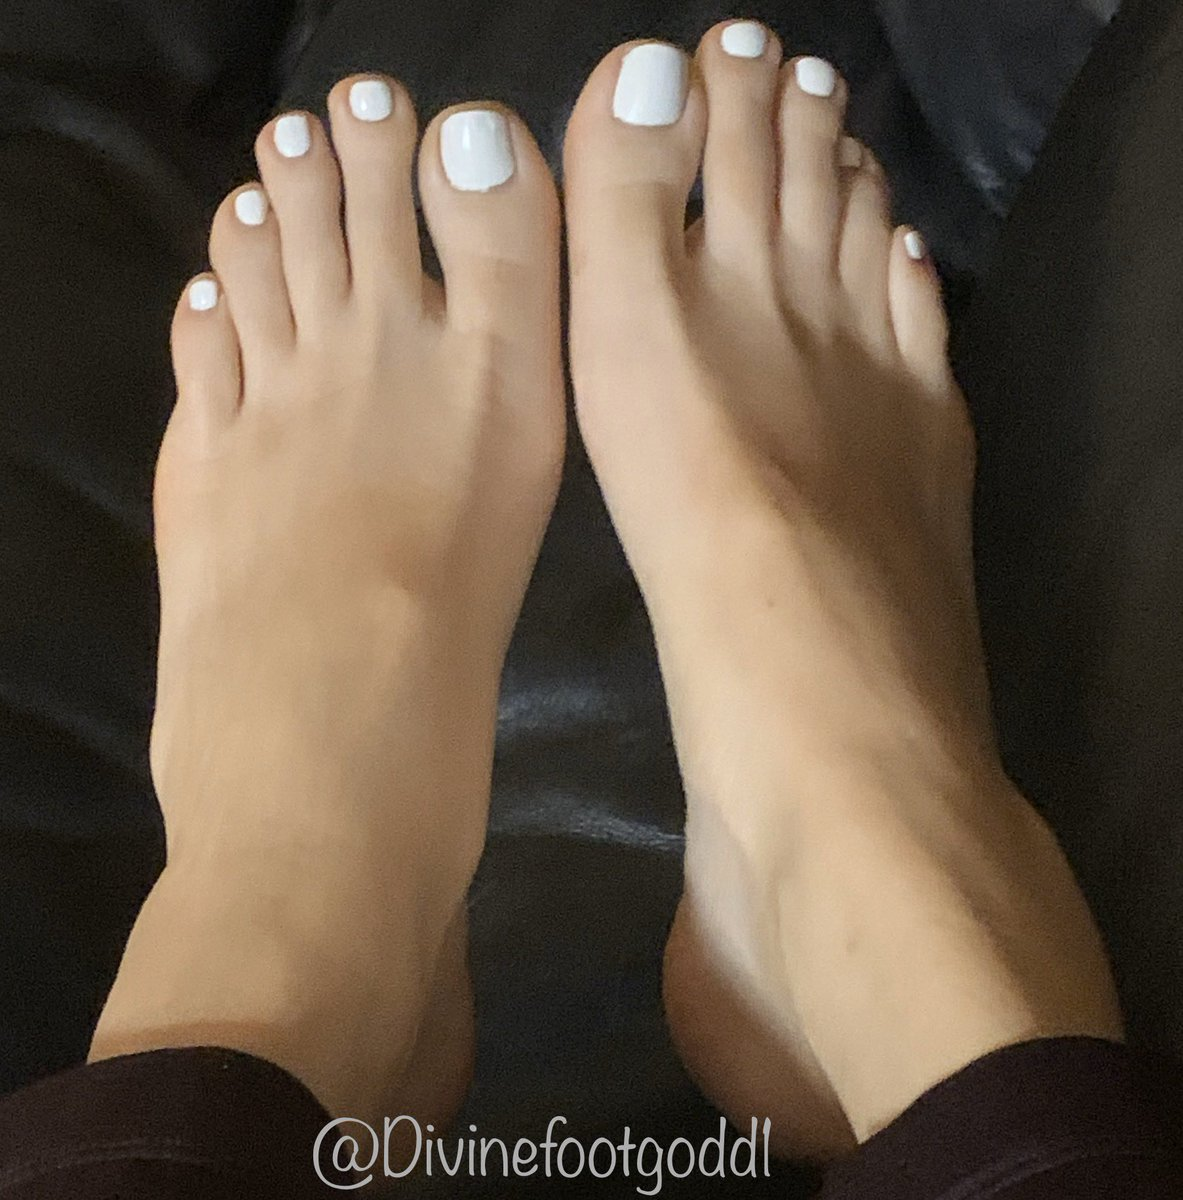 Sexy and erotic nude feet foot toes fetish print